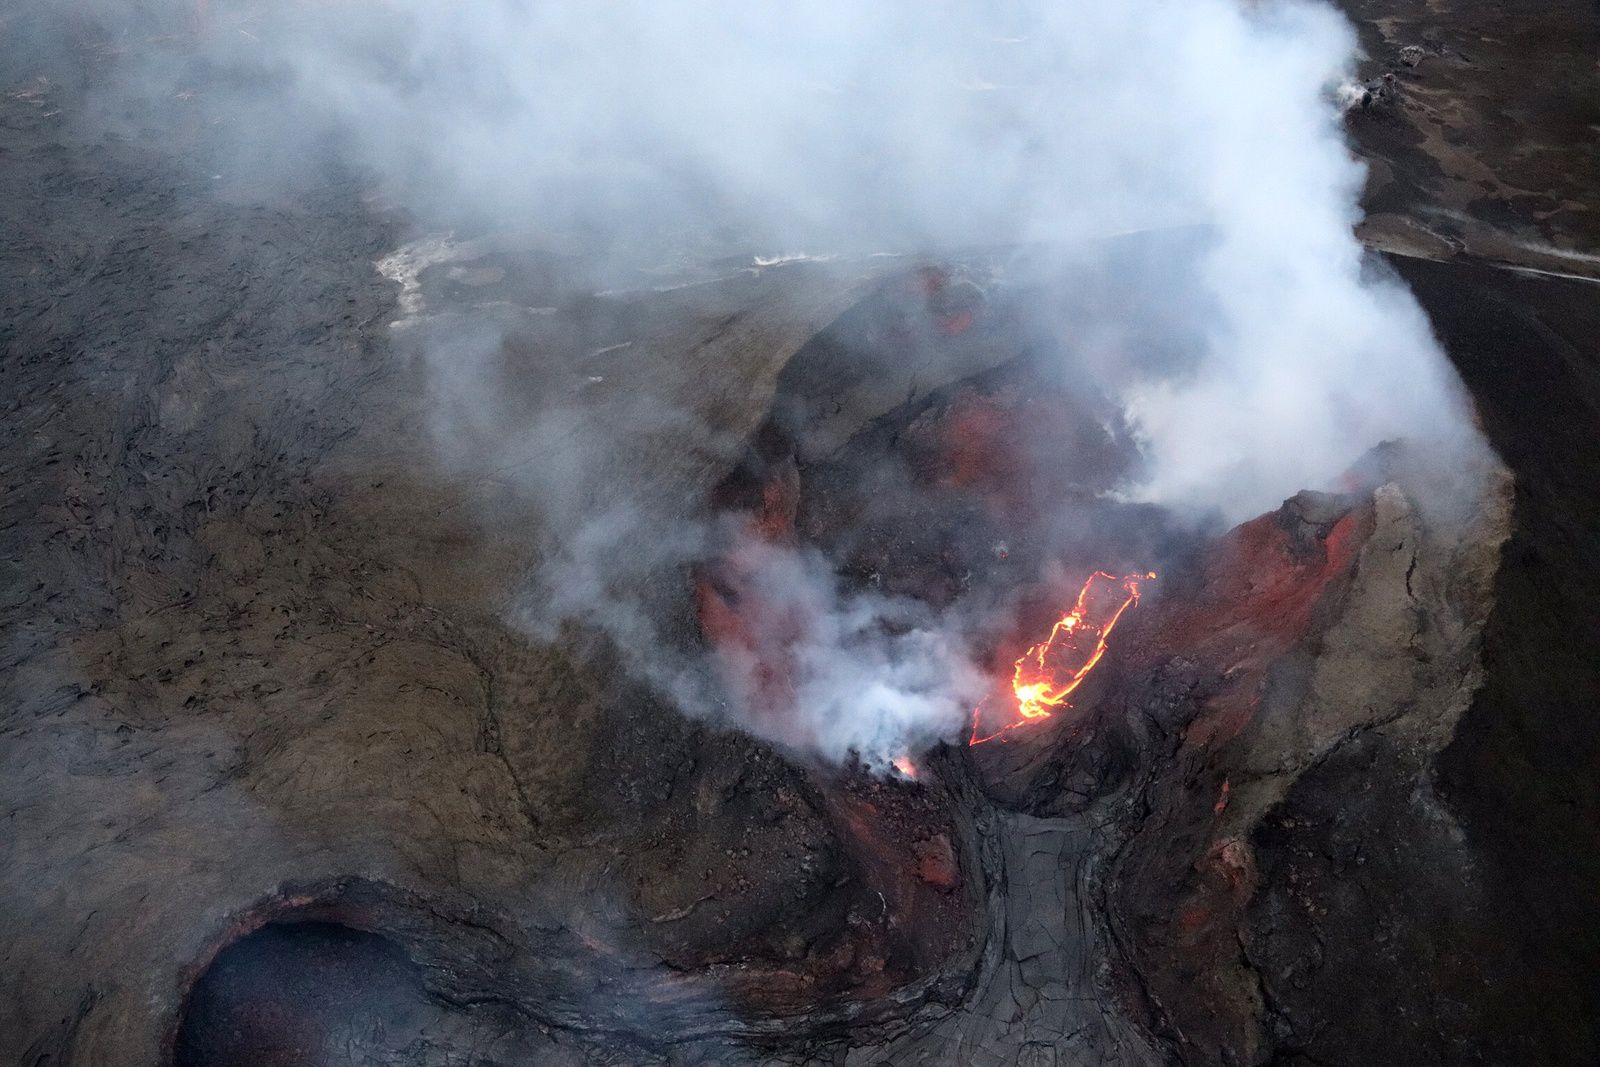 Kilauea - East rift zone - small lava lake below in cone on fissure 8 - photo HVO-USGS